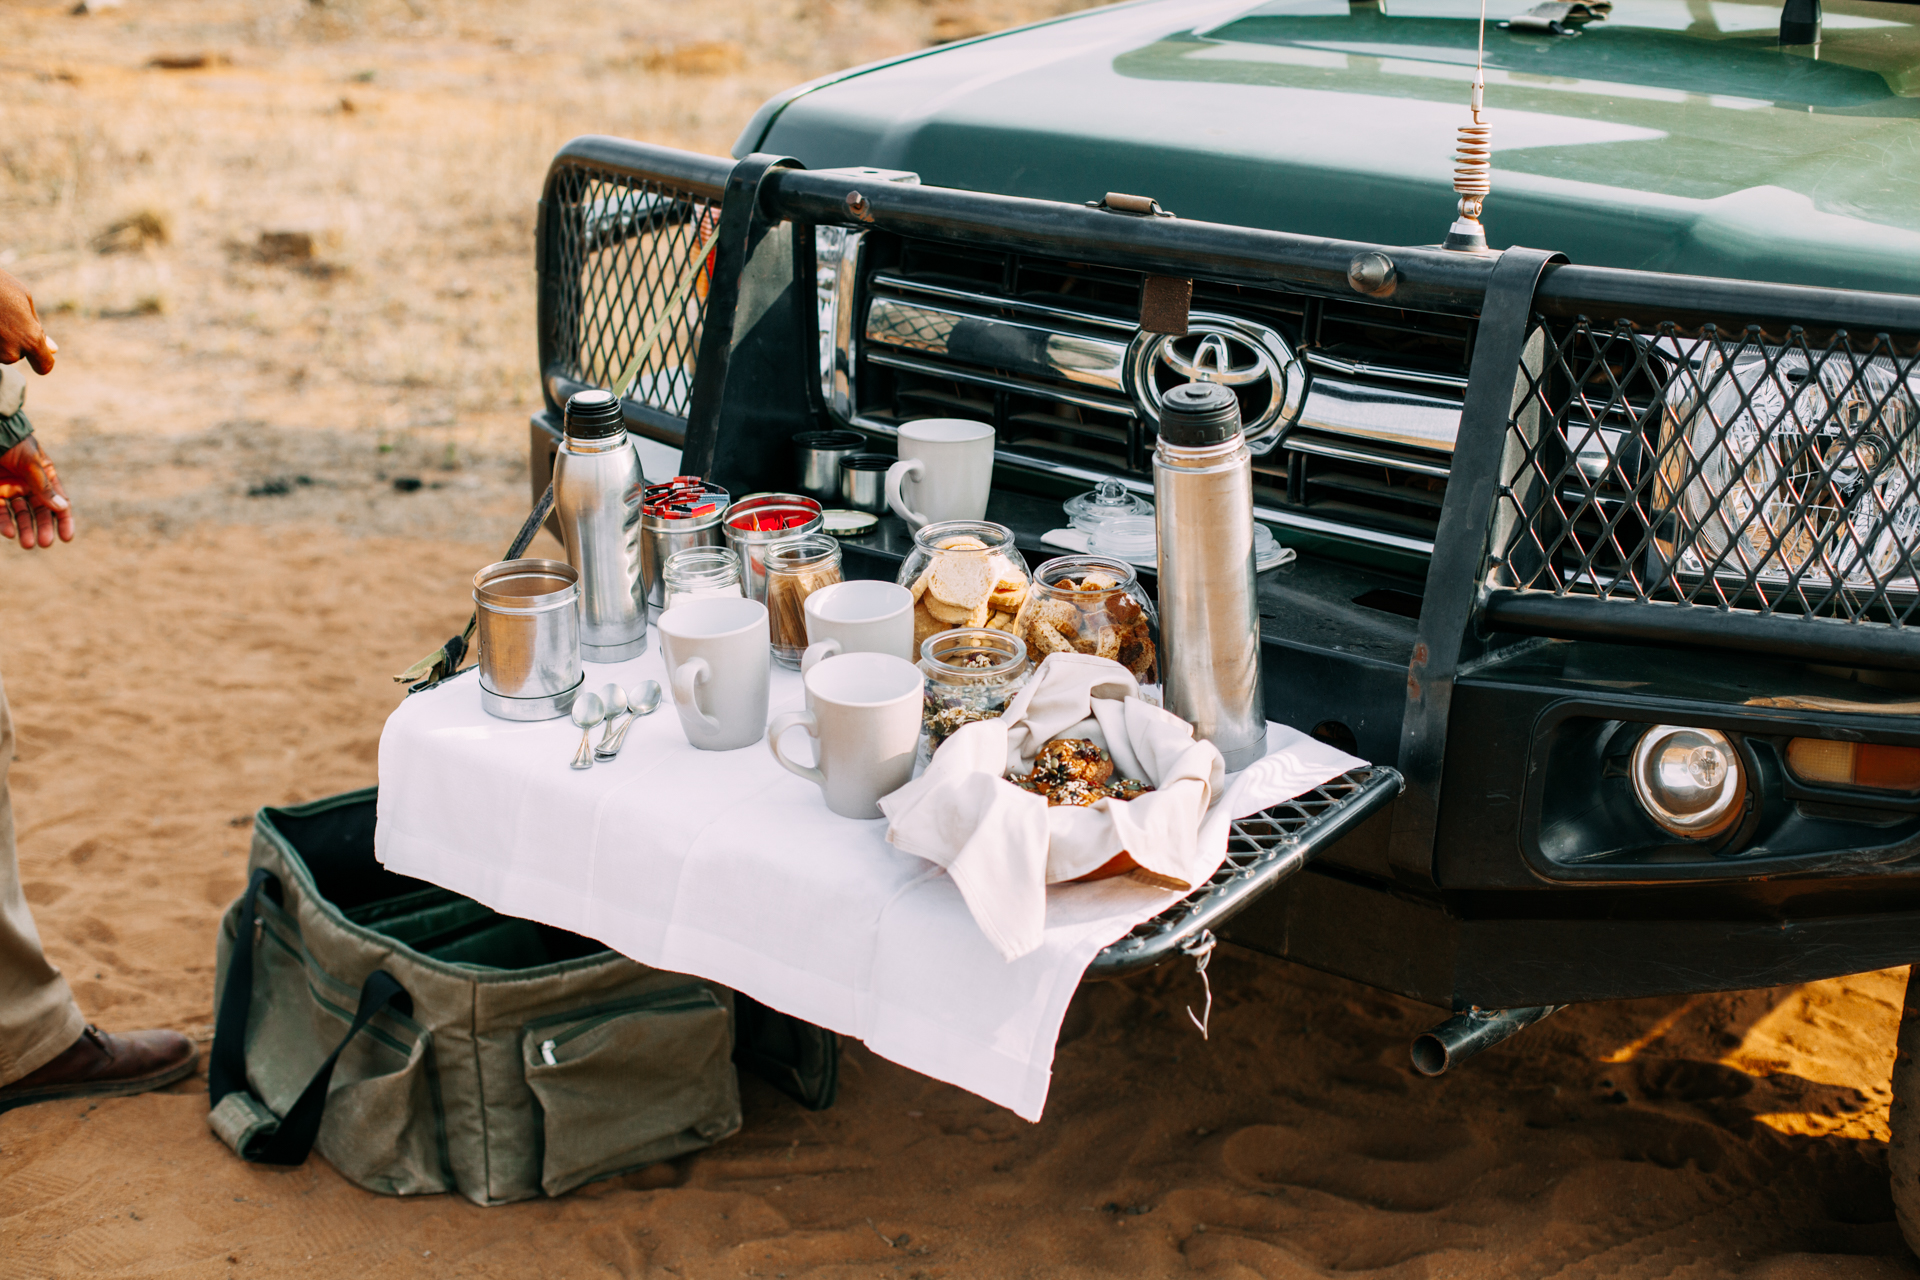 TEA IN THE BUSH: Stopping for tea and rusks in the early morning, while in awe of the peace and quiet that surrounded us (apart from the birds waking up).